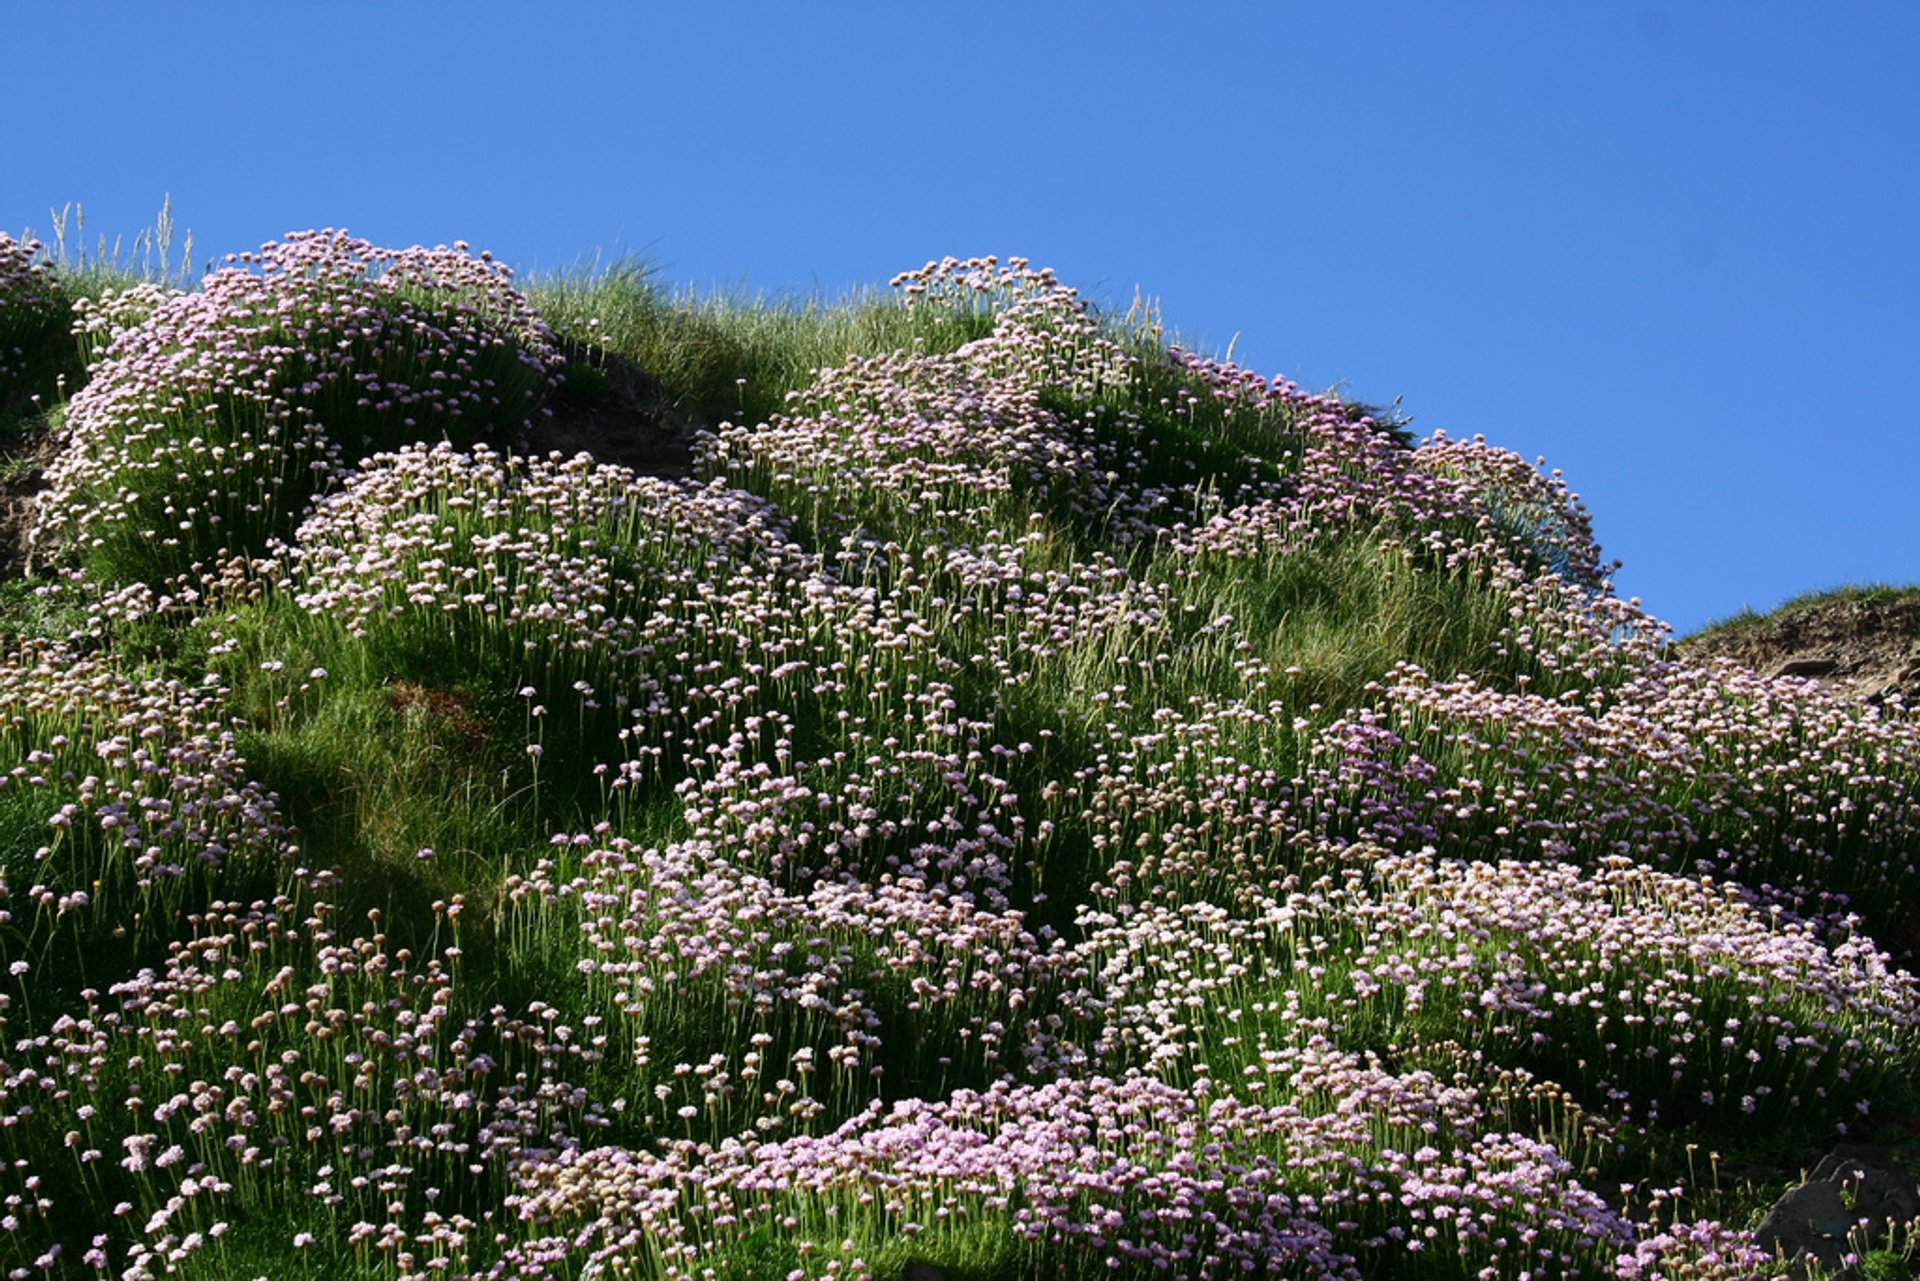 Sea Pinks Blooming Season in Ireland 2019 - Best Time